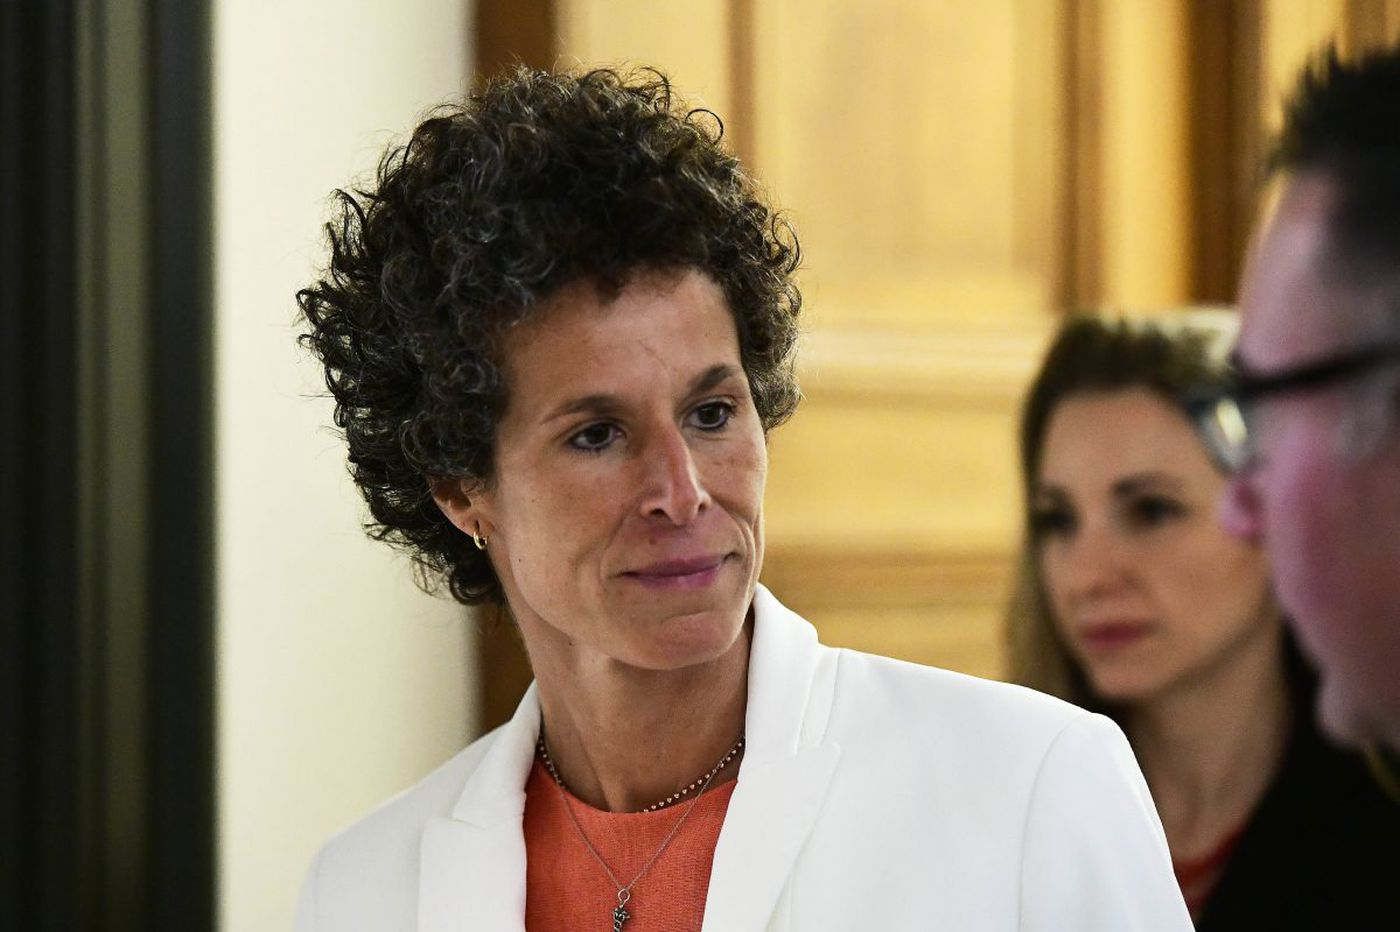 Bill Cosby's lawyer tries to rattle Andrea Constand, as she takes the stand 'for justice'